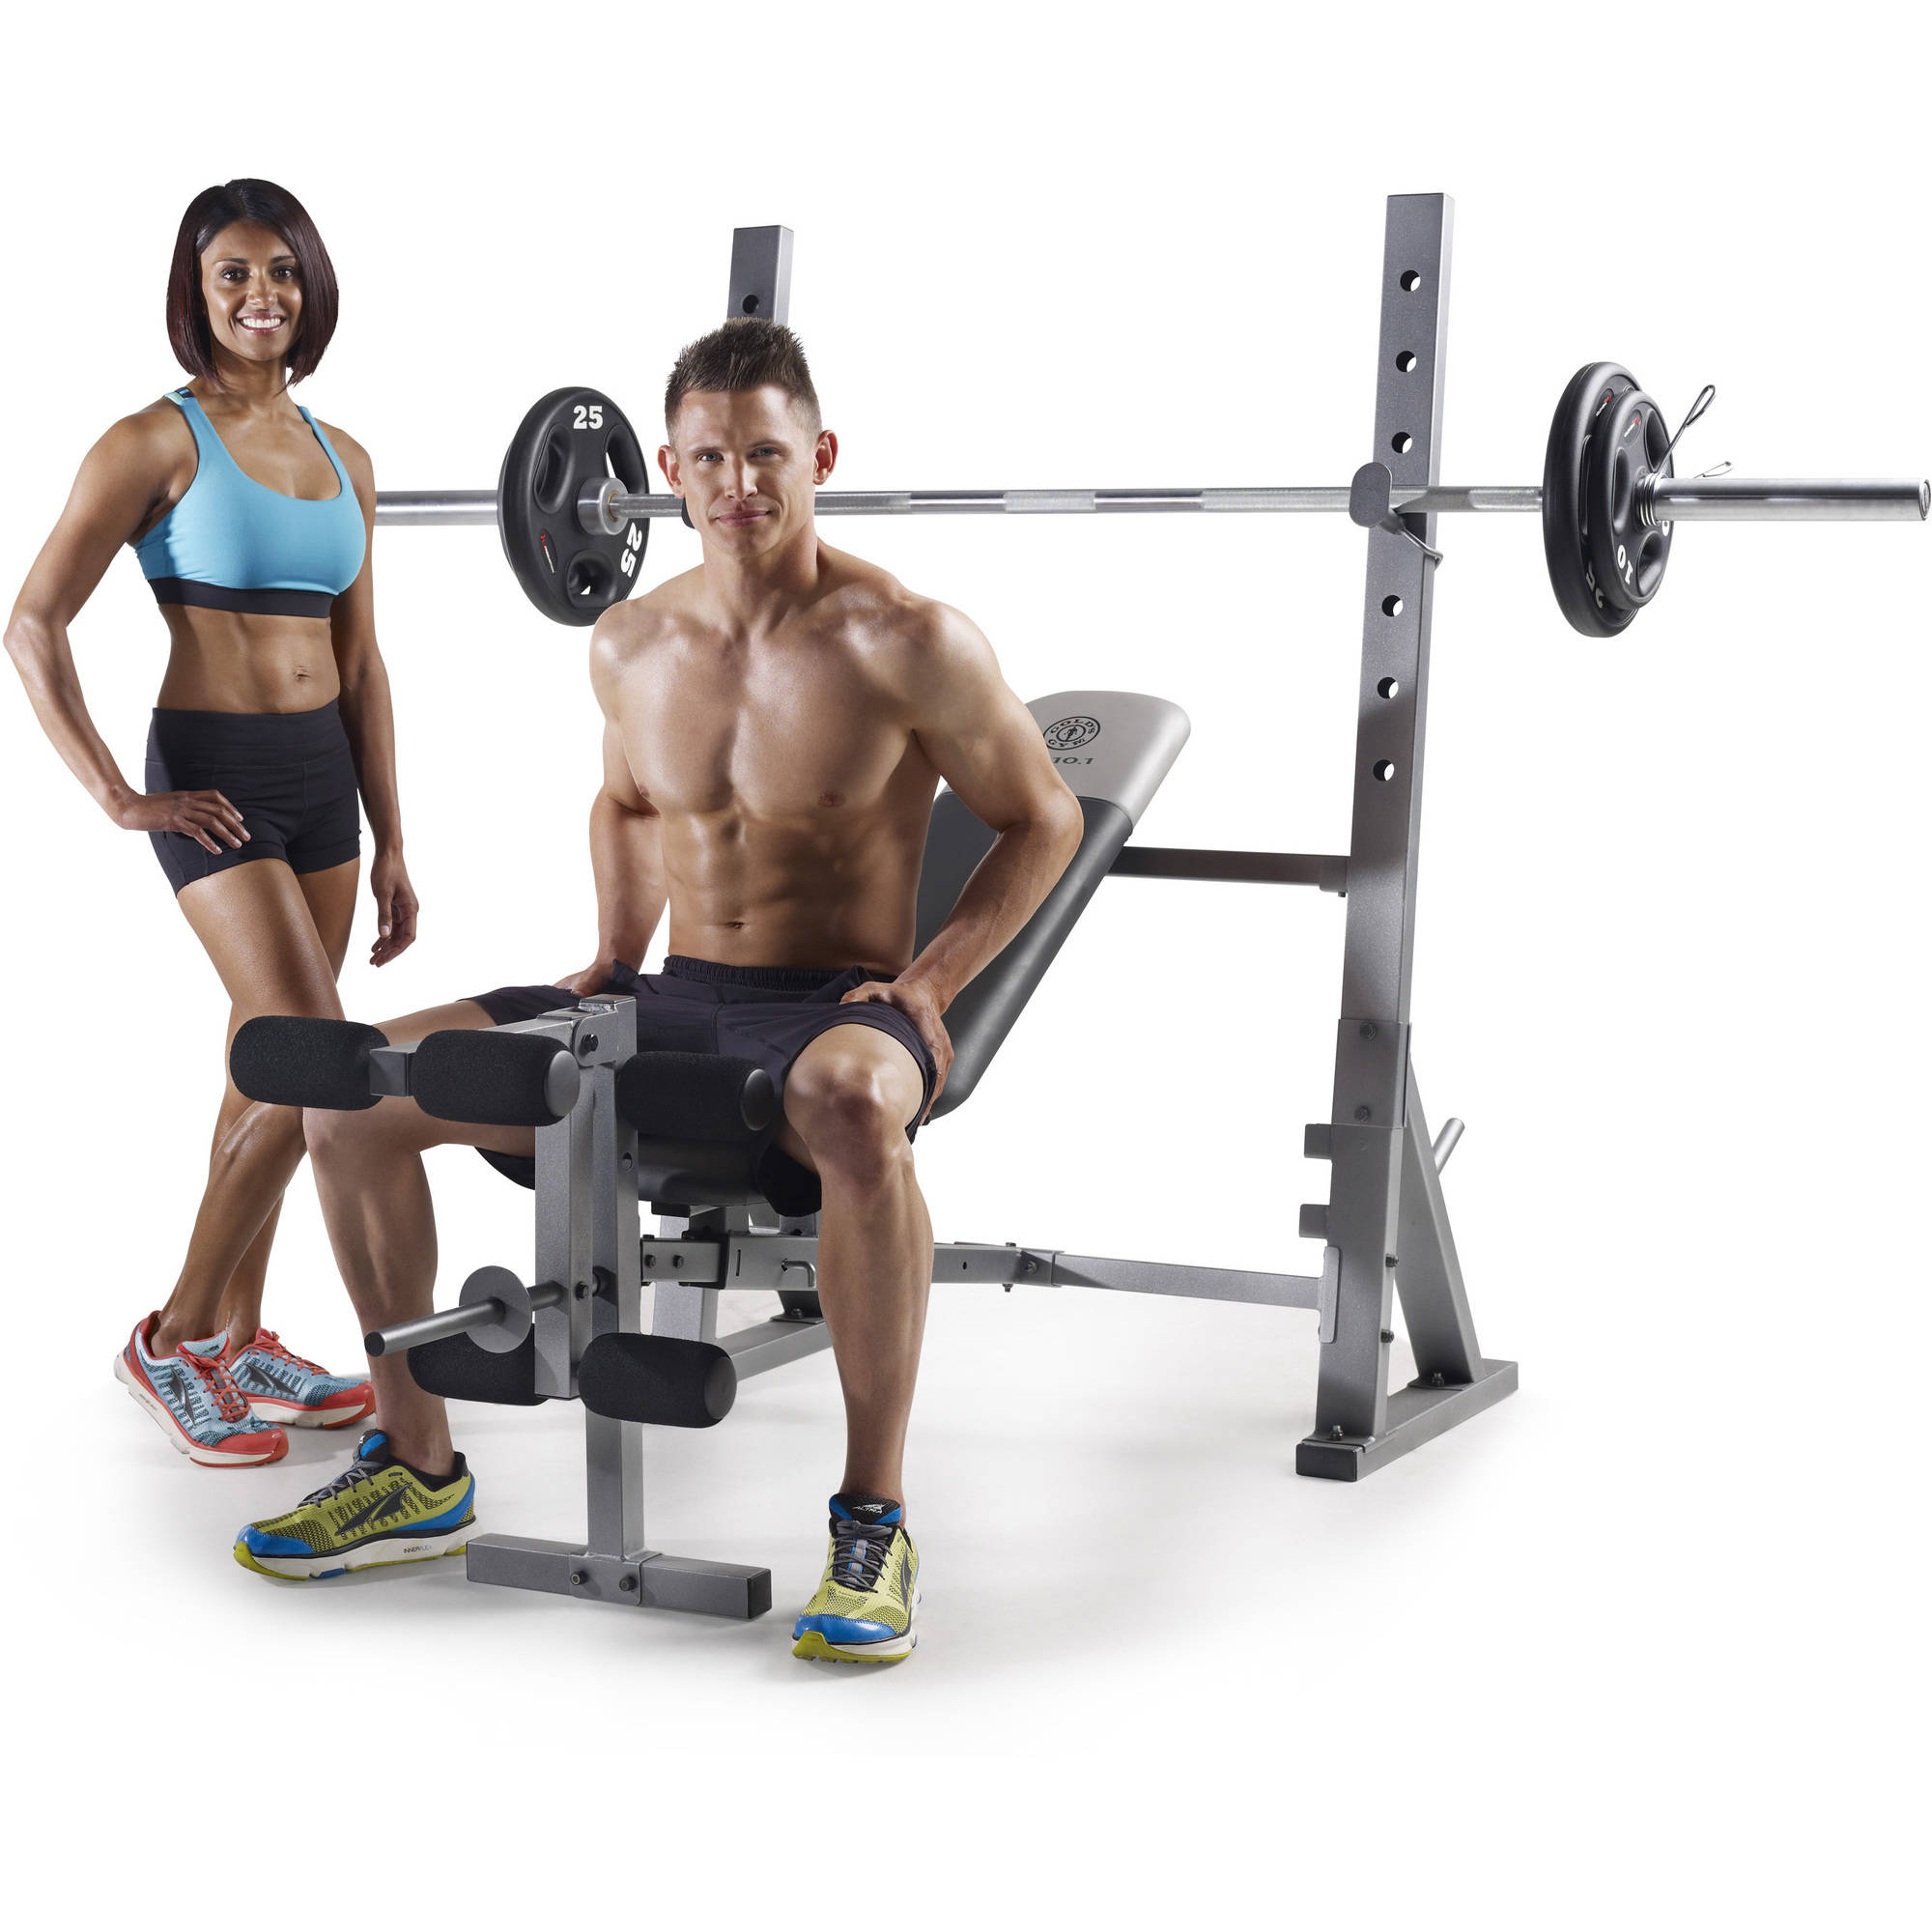 Golds gym xr 10.1 olympic weight bench gym training weight lifting